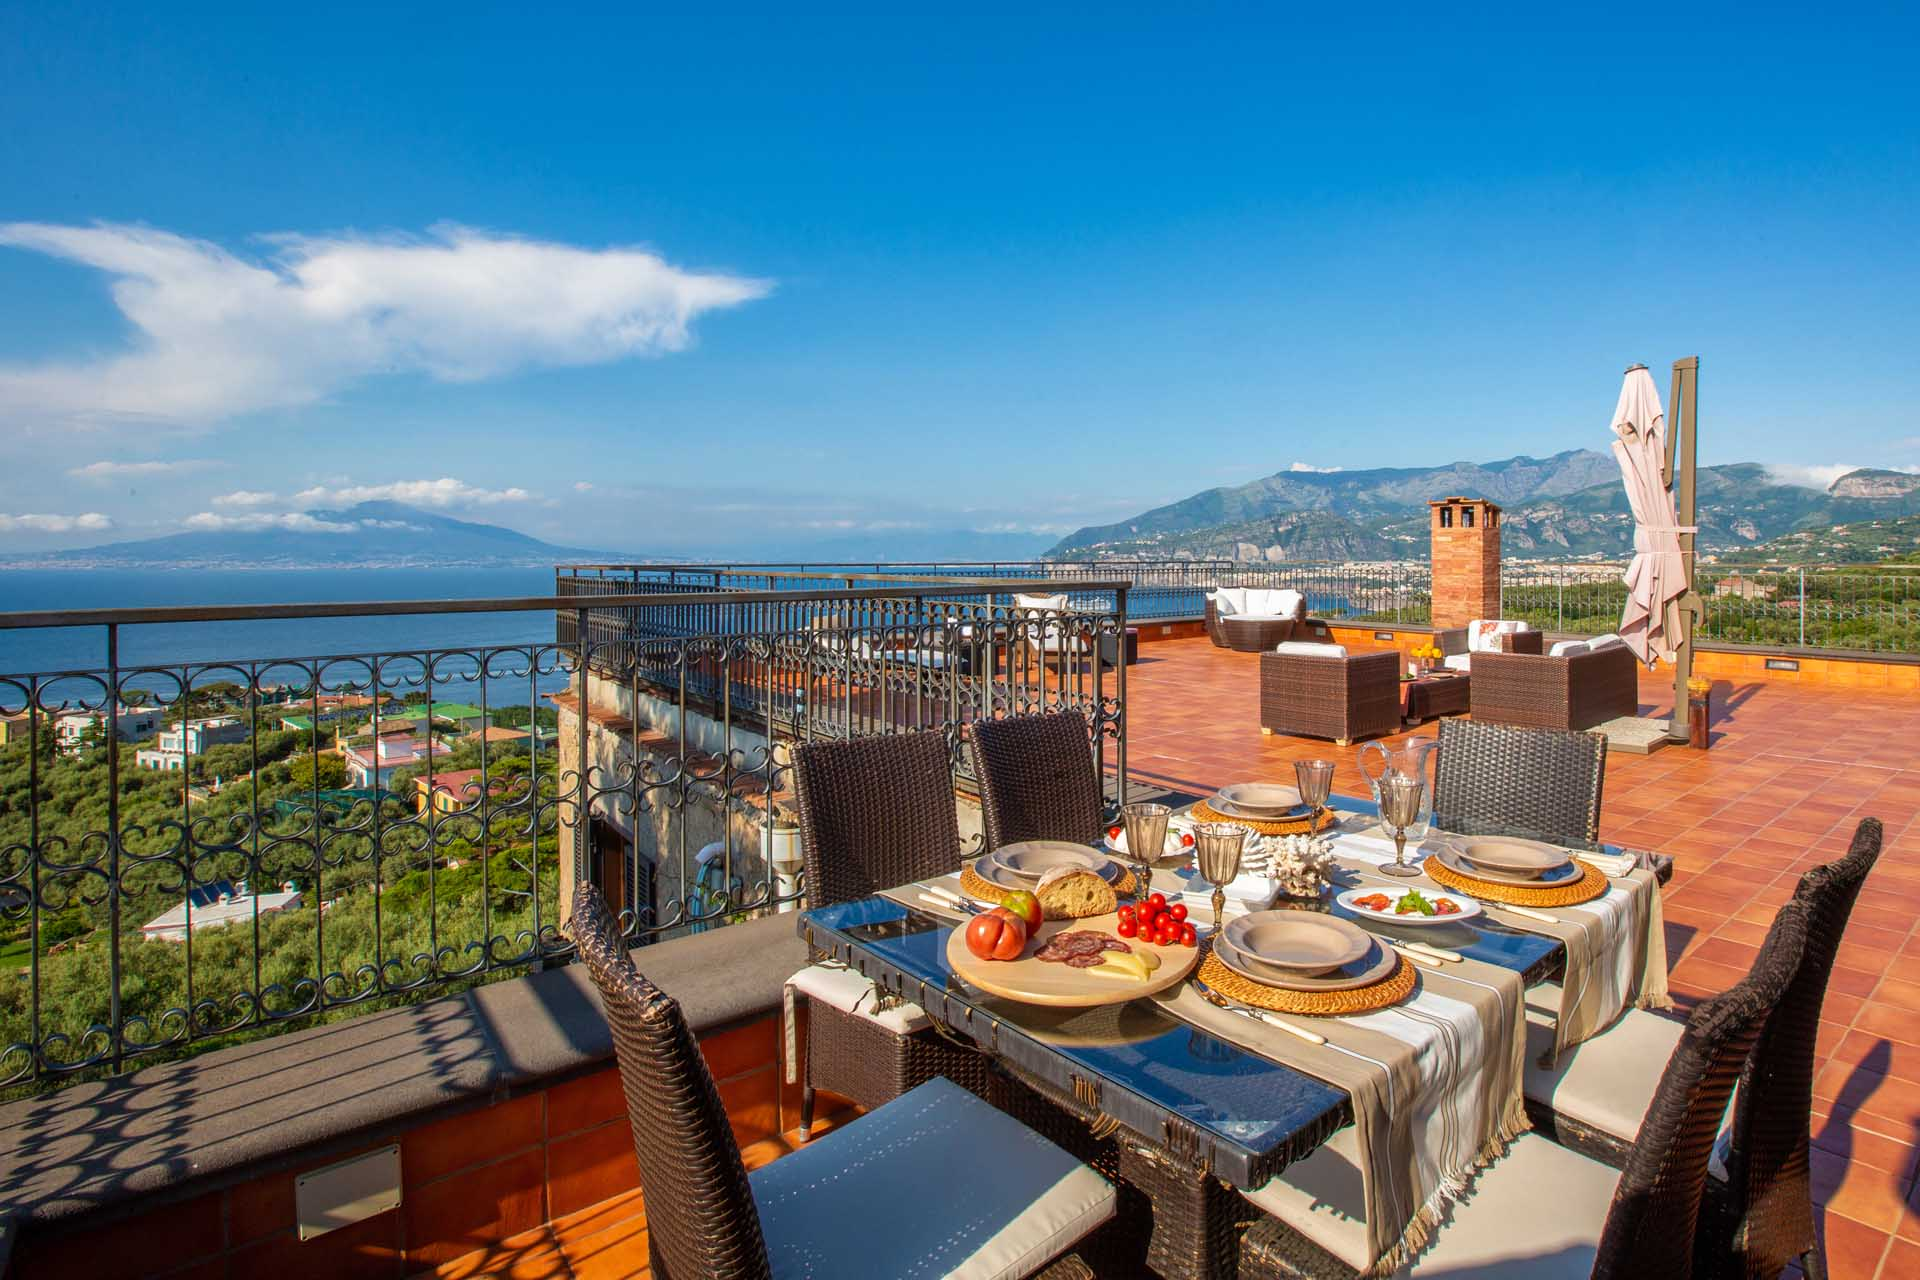 Casa Spartano Luxury Sorrento Romantic Apartment